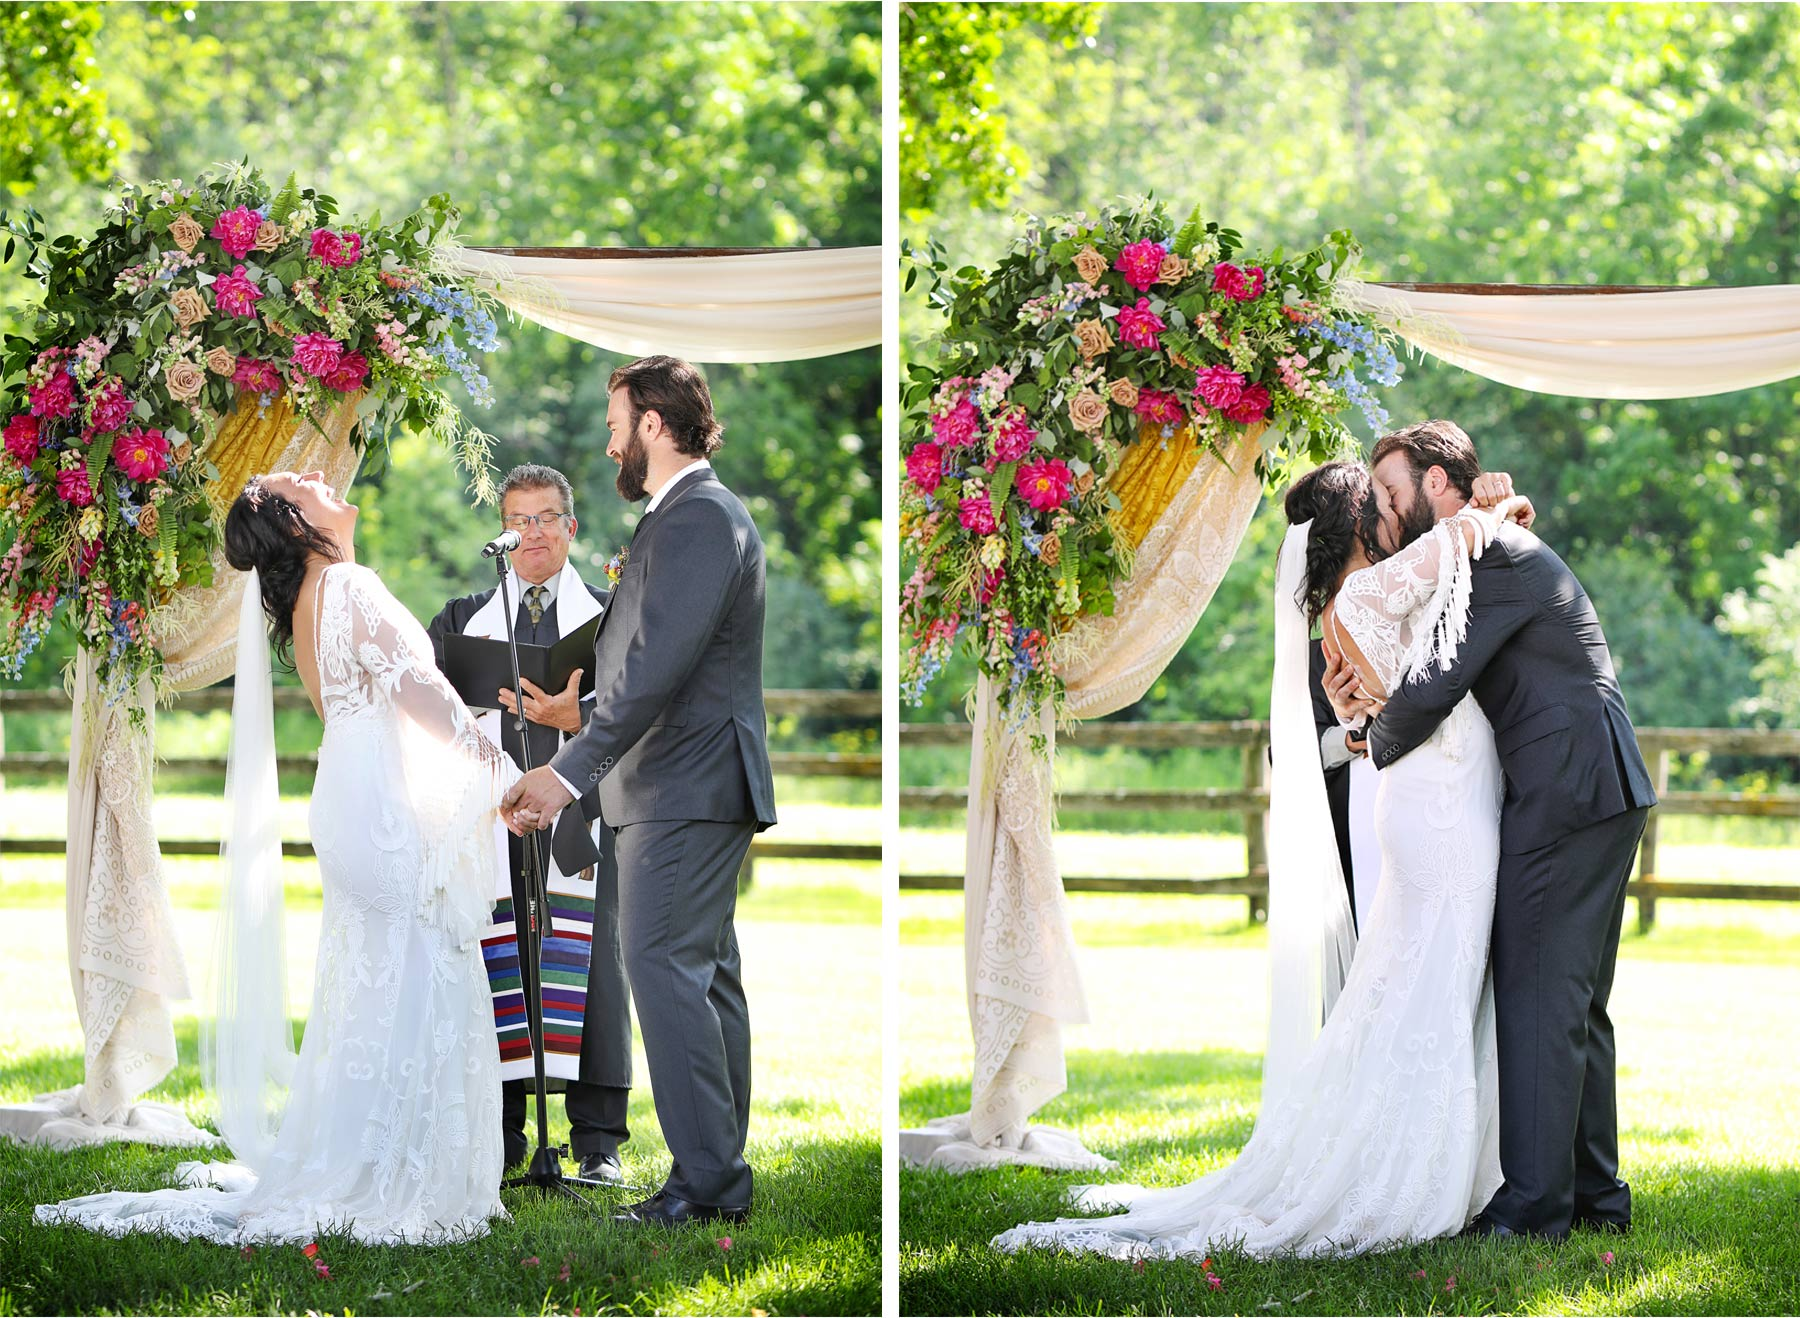 17-Vick-Photography-Rochester-Minnesota-Mayowood-Stone-Barn-Country-Wedding-Summer-Outdoor-Ceremony-Bride-Groom-Kiss-Lizz-and-Brady.jpg